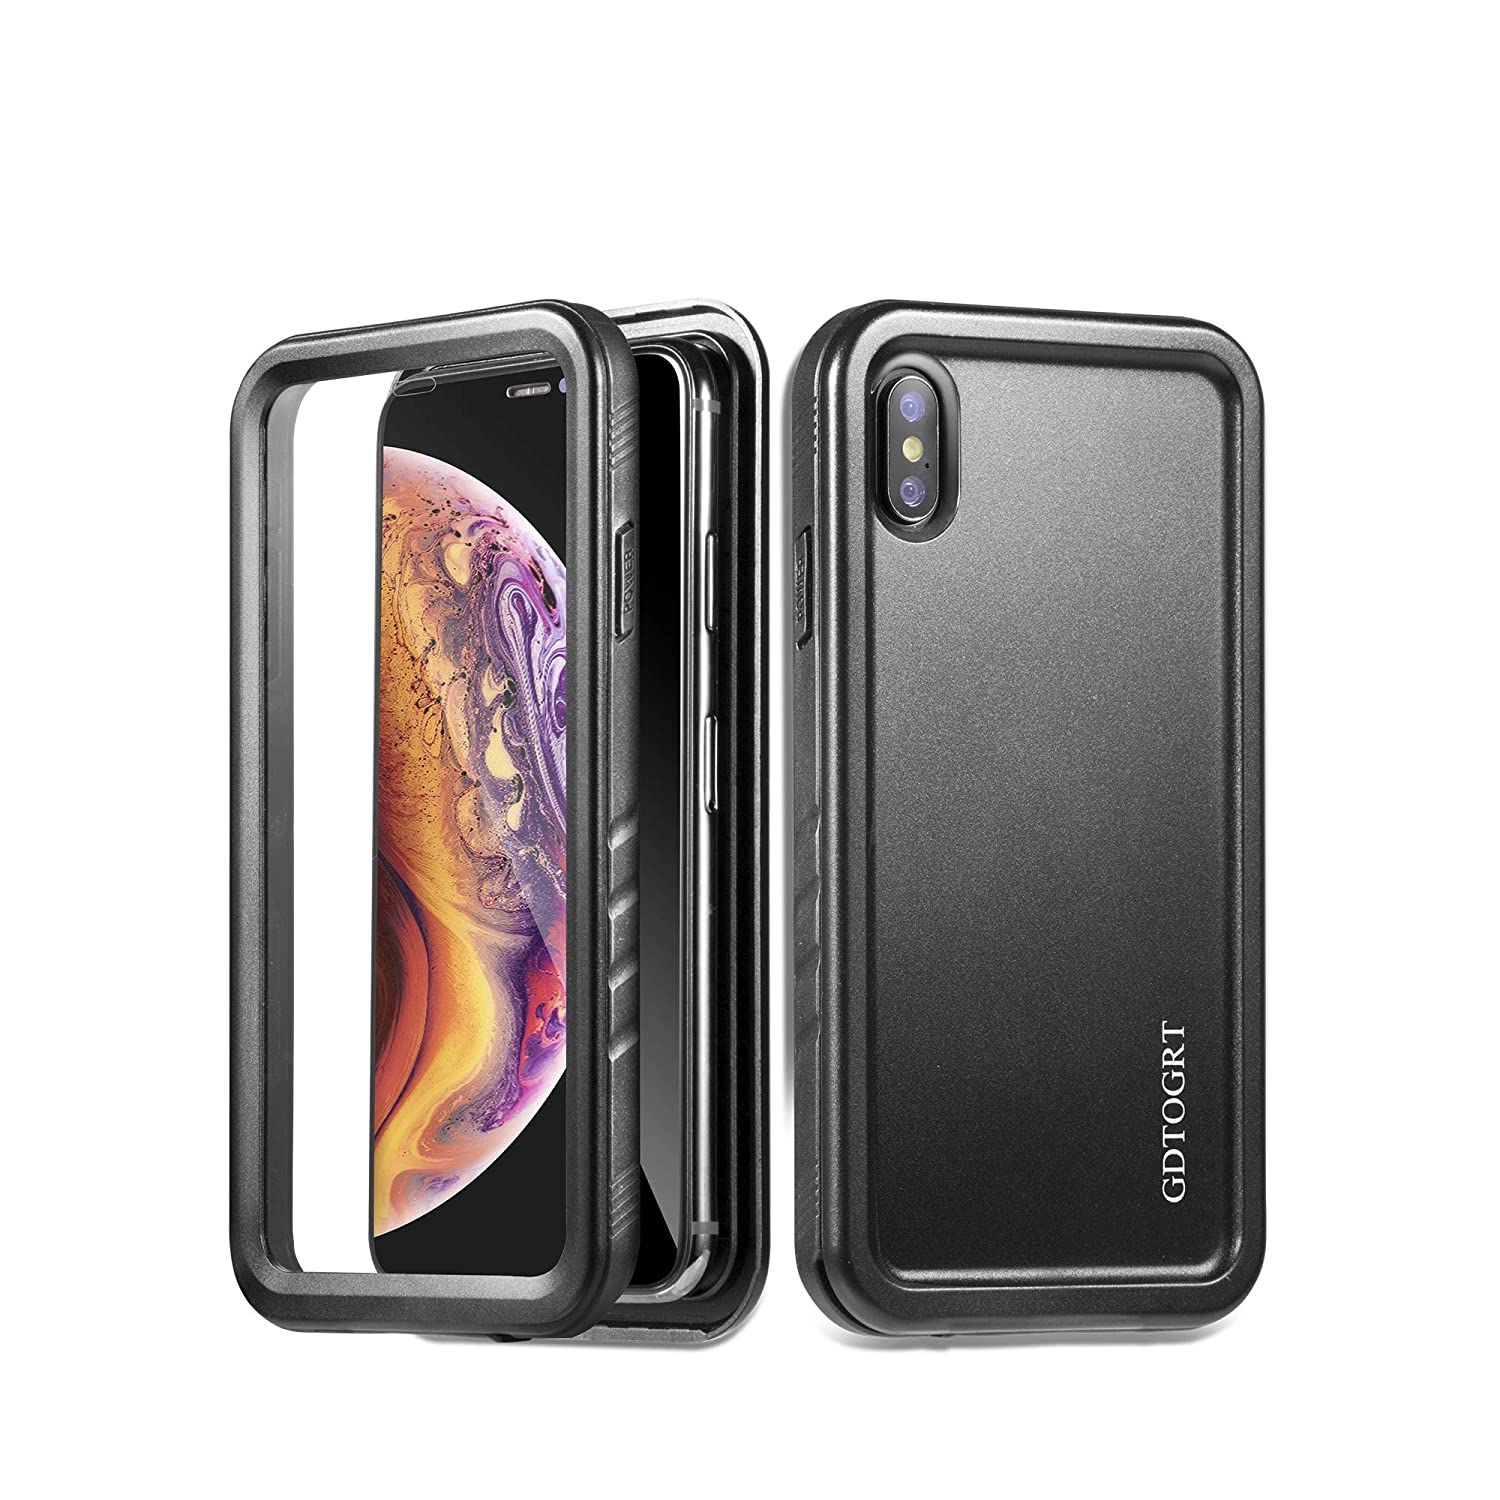 wholesale dealer 119cc c4c4c GDTOGRT iPhone Xs Max Case 360 Full Body Shockproof Heavey Duty Drop  Protection Hybrid Case Cover with Built-in Screen Protector for Apple  iPhone Xs ...